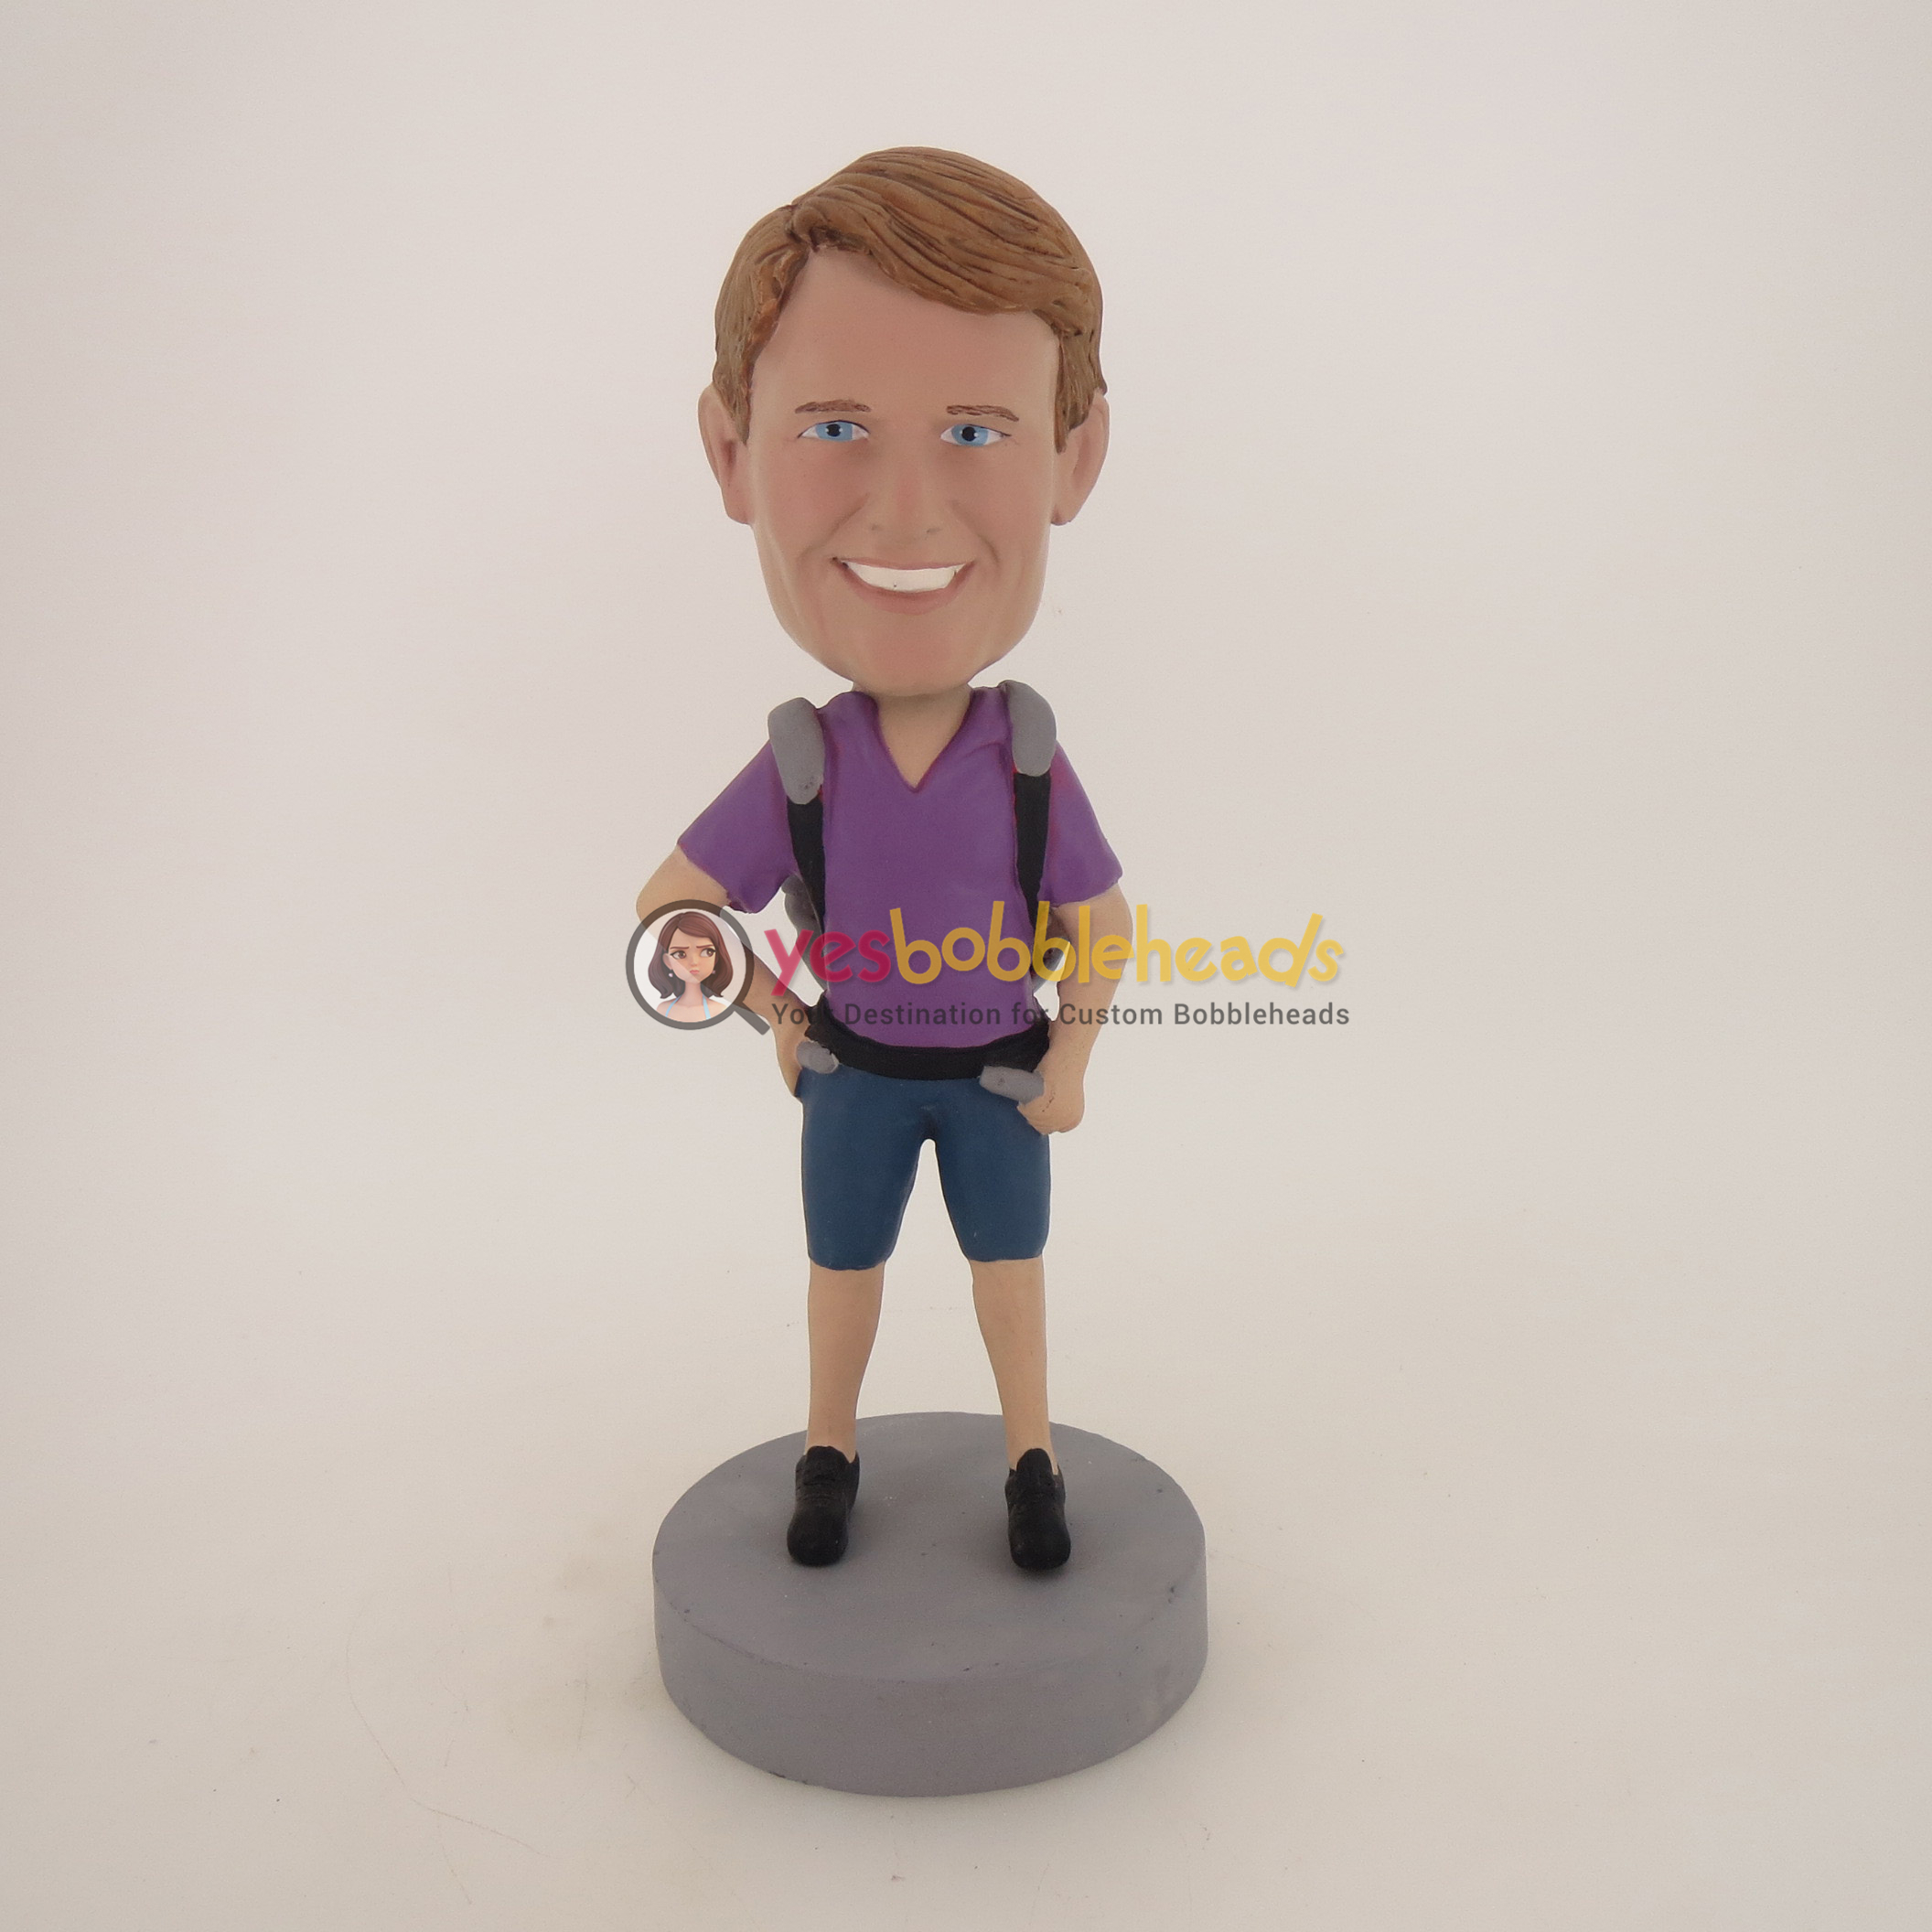 Picture of Custom Bobblehead Doll: Casual Man With Bags